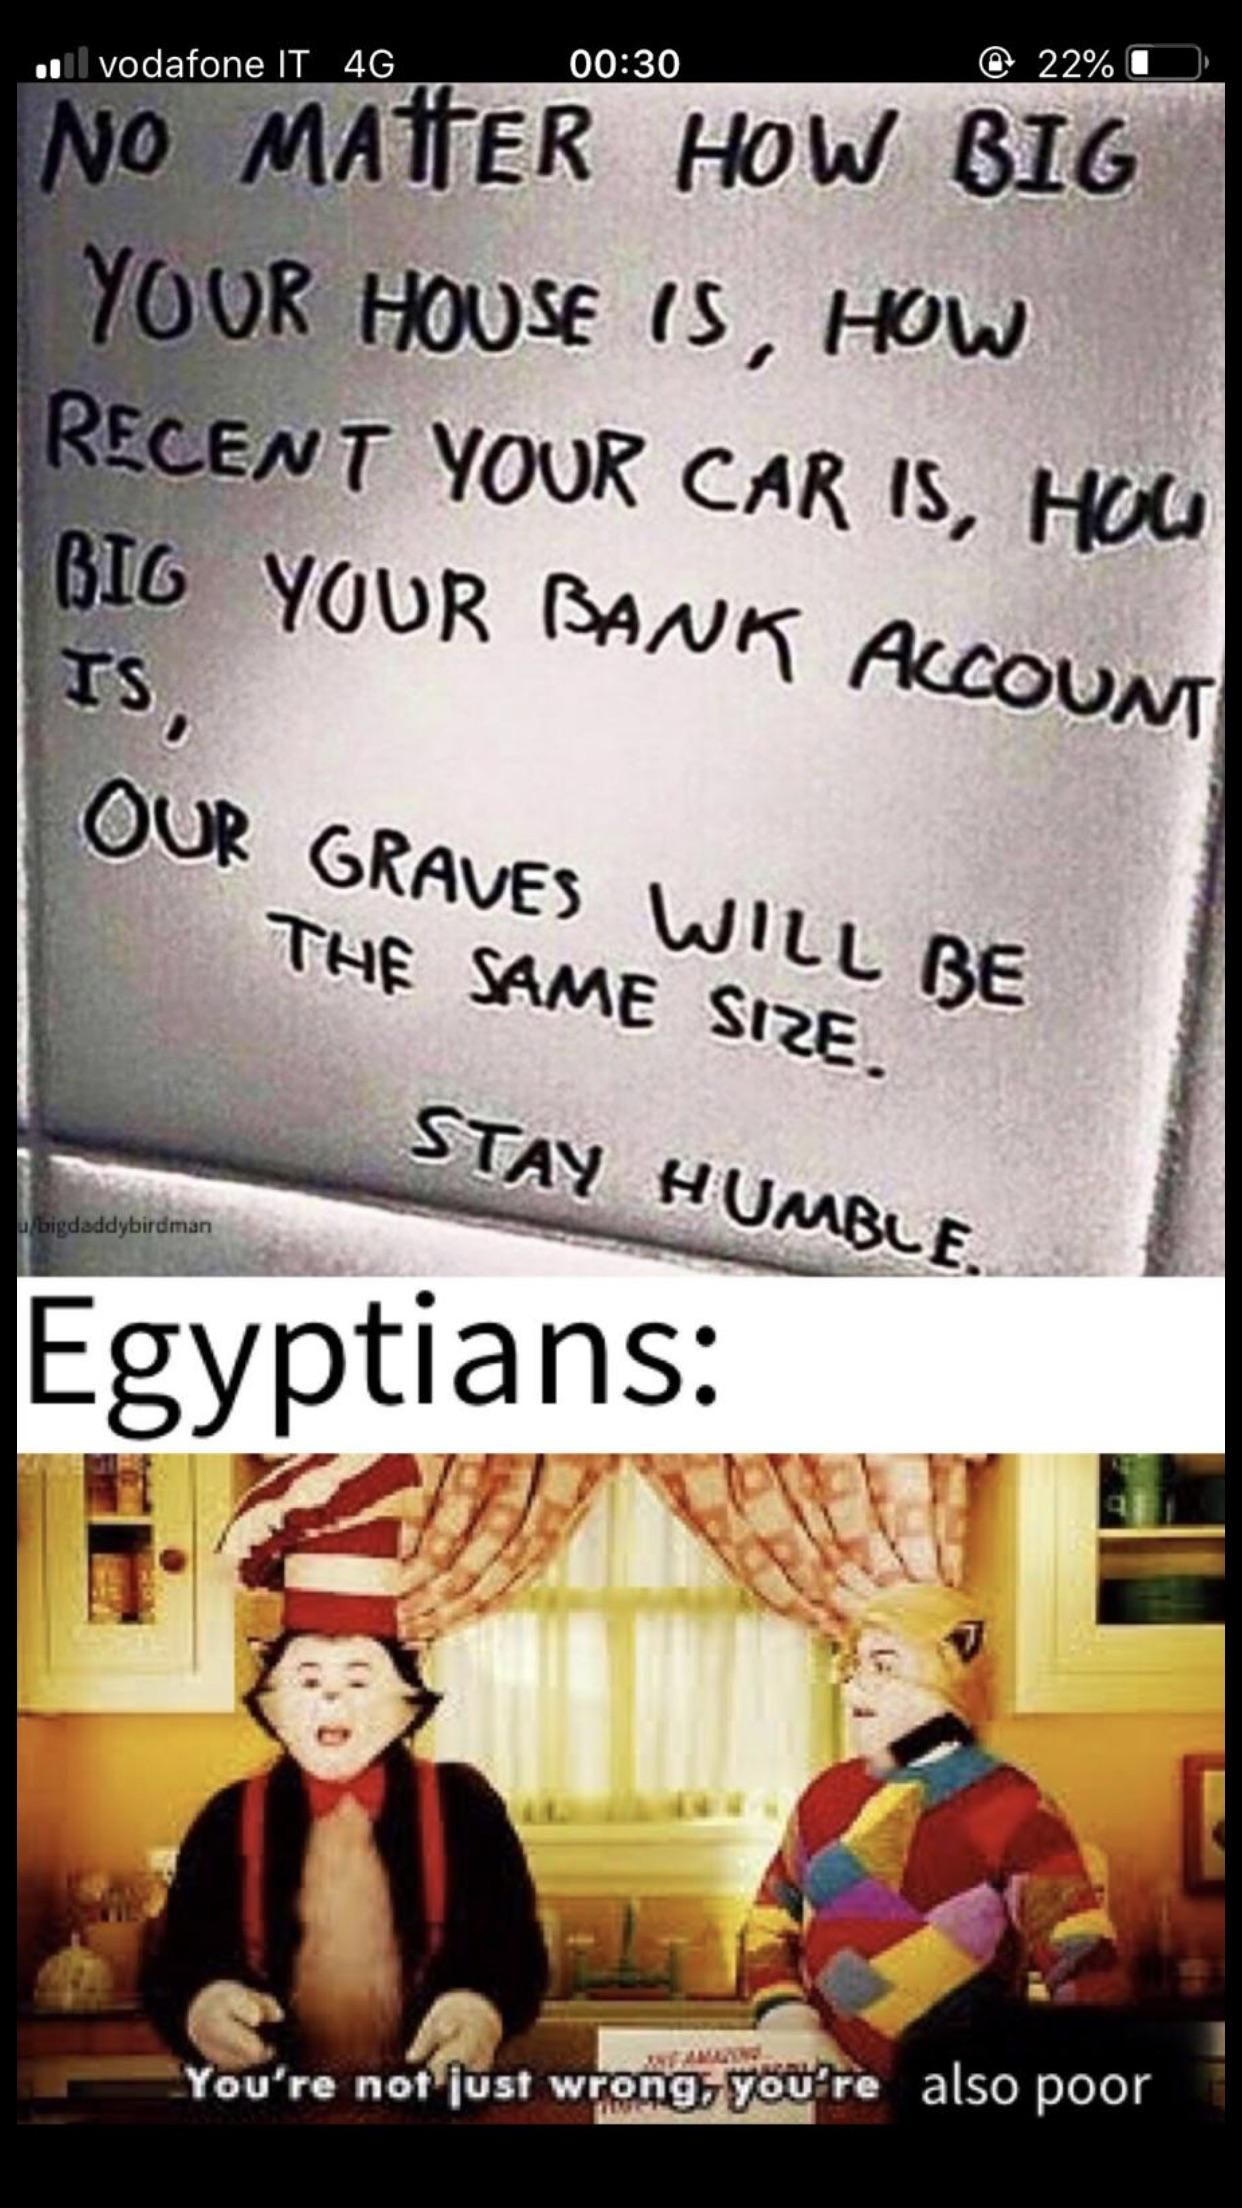 Egyptians were living the good life